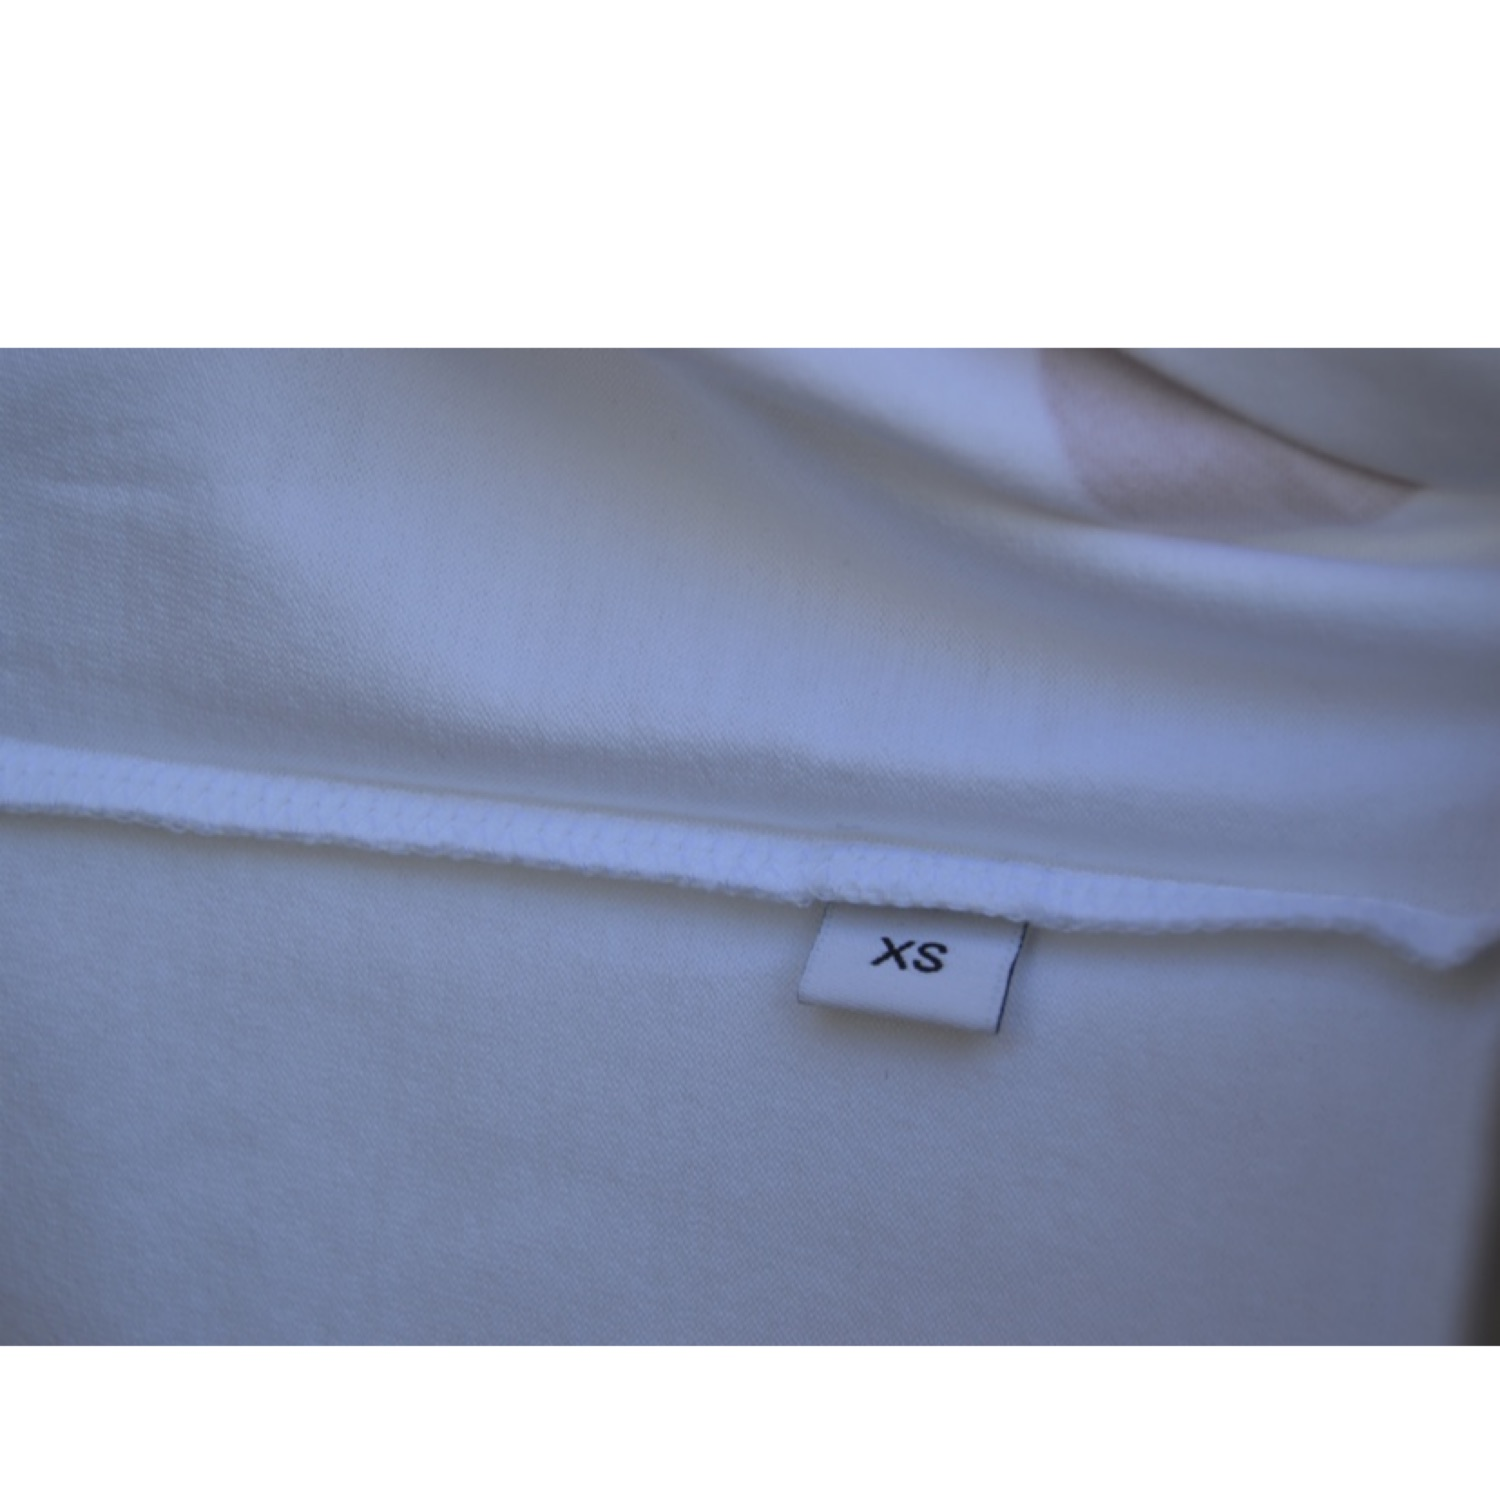 Givenchy White And Red Hem Logo T-Shirt